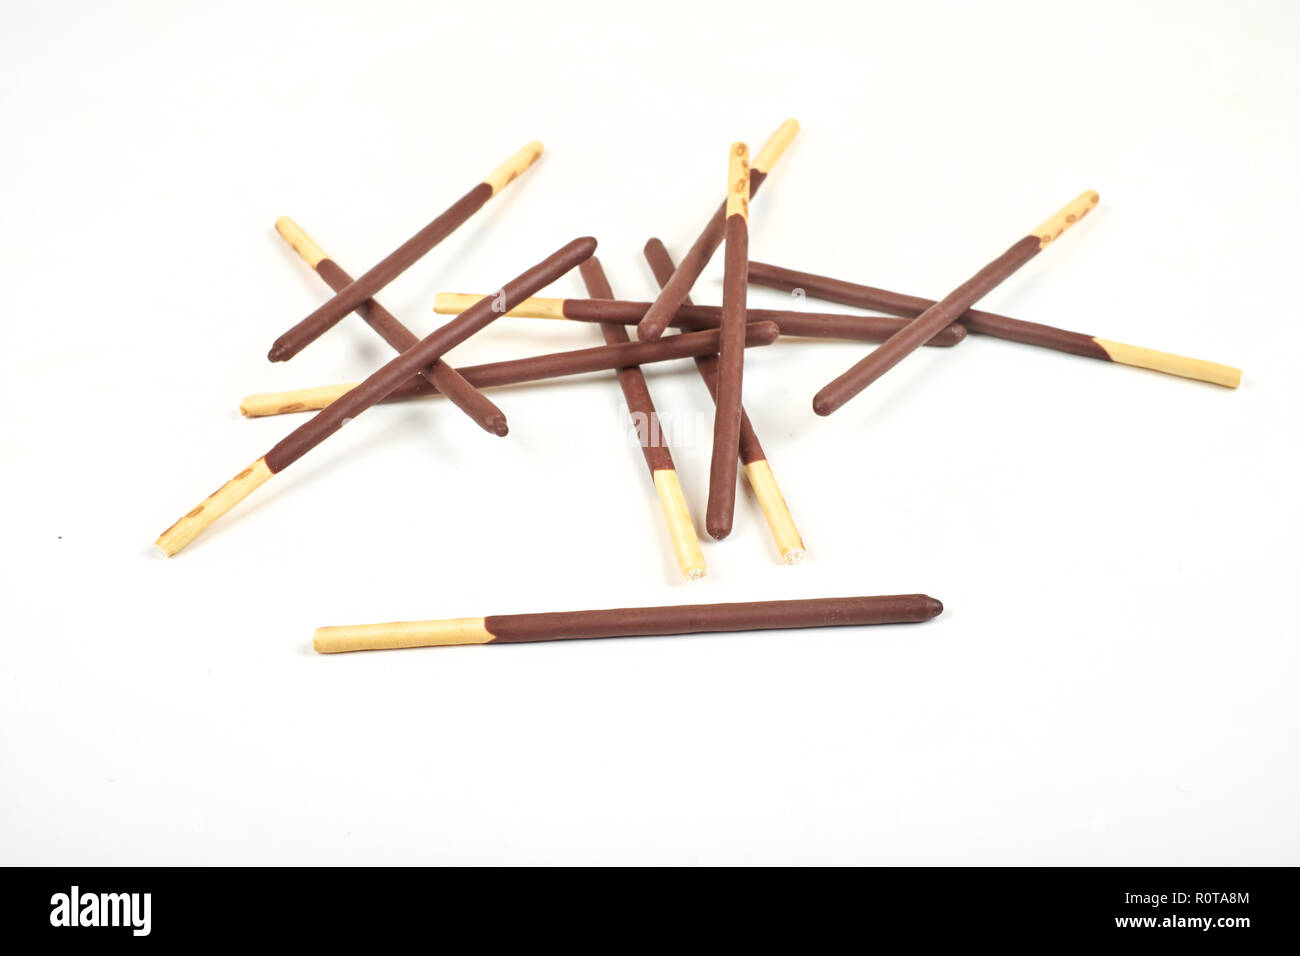 Biscuit Sticks Stock Photos Amp Biscuit Sticks Stock Images